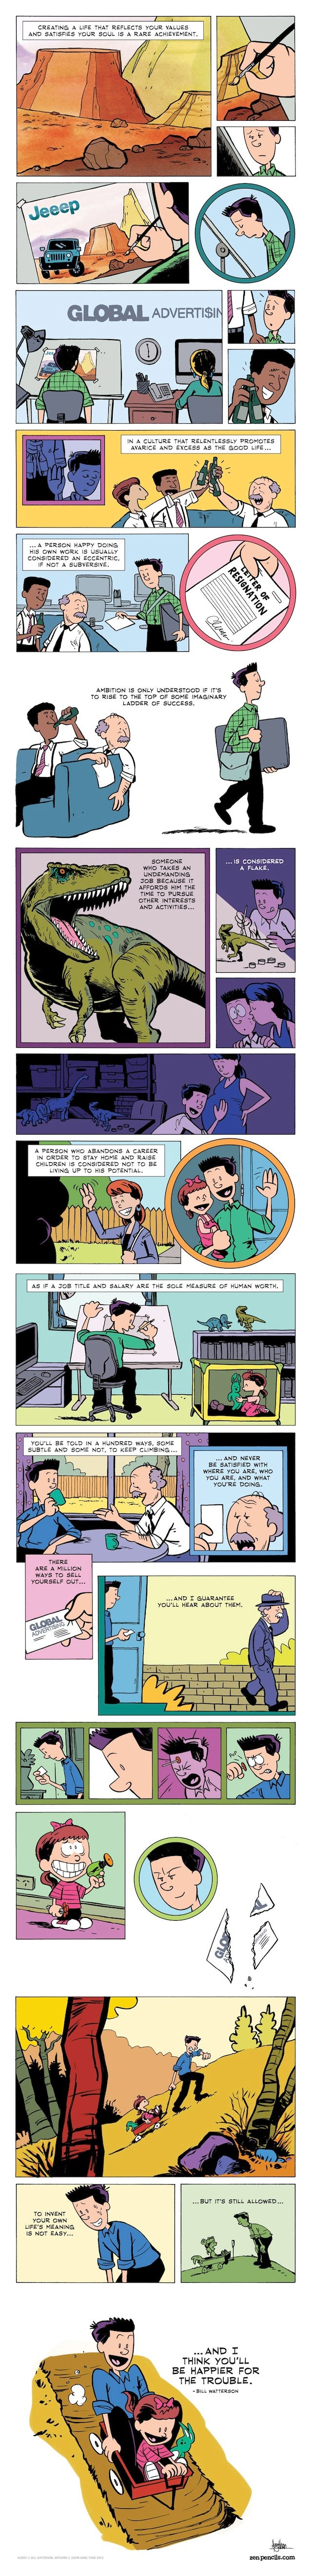 Calvin & Hobbes Creator's Life Lessons Become Beautiful New Comic